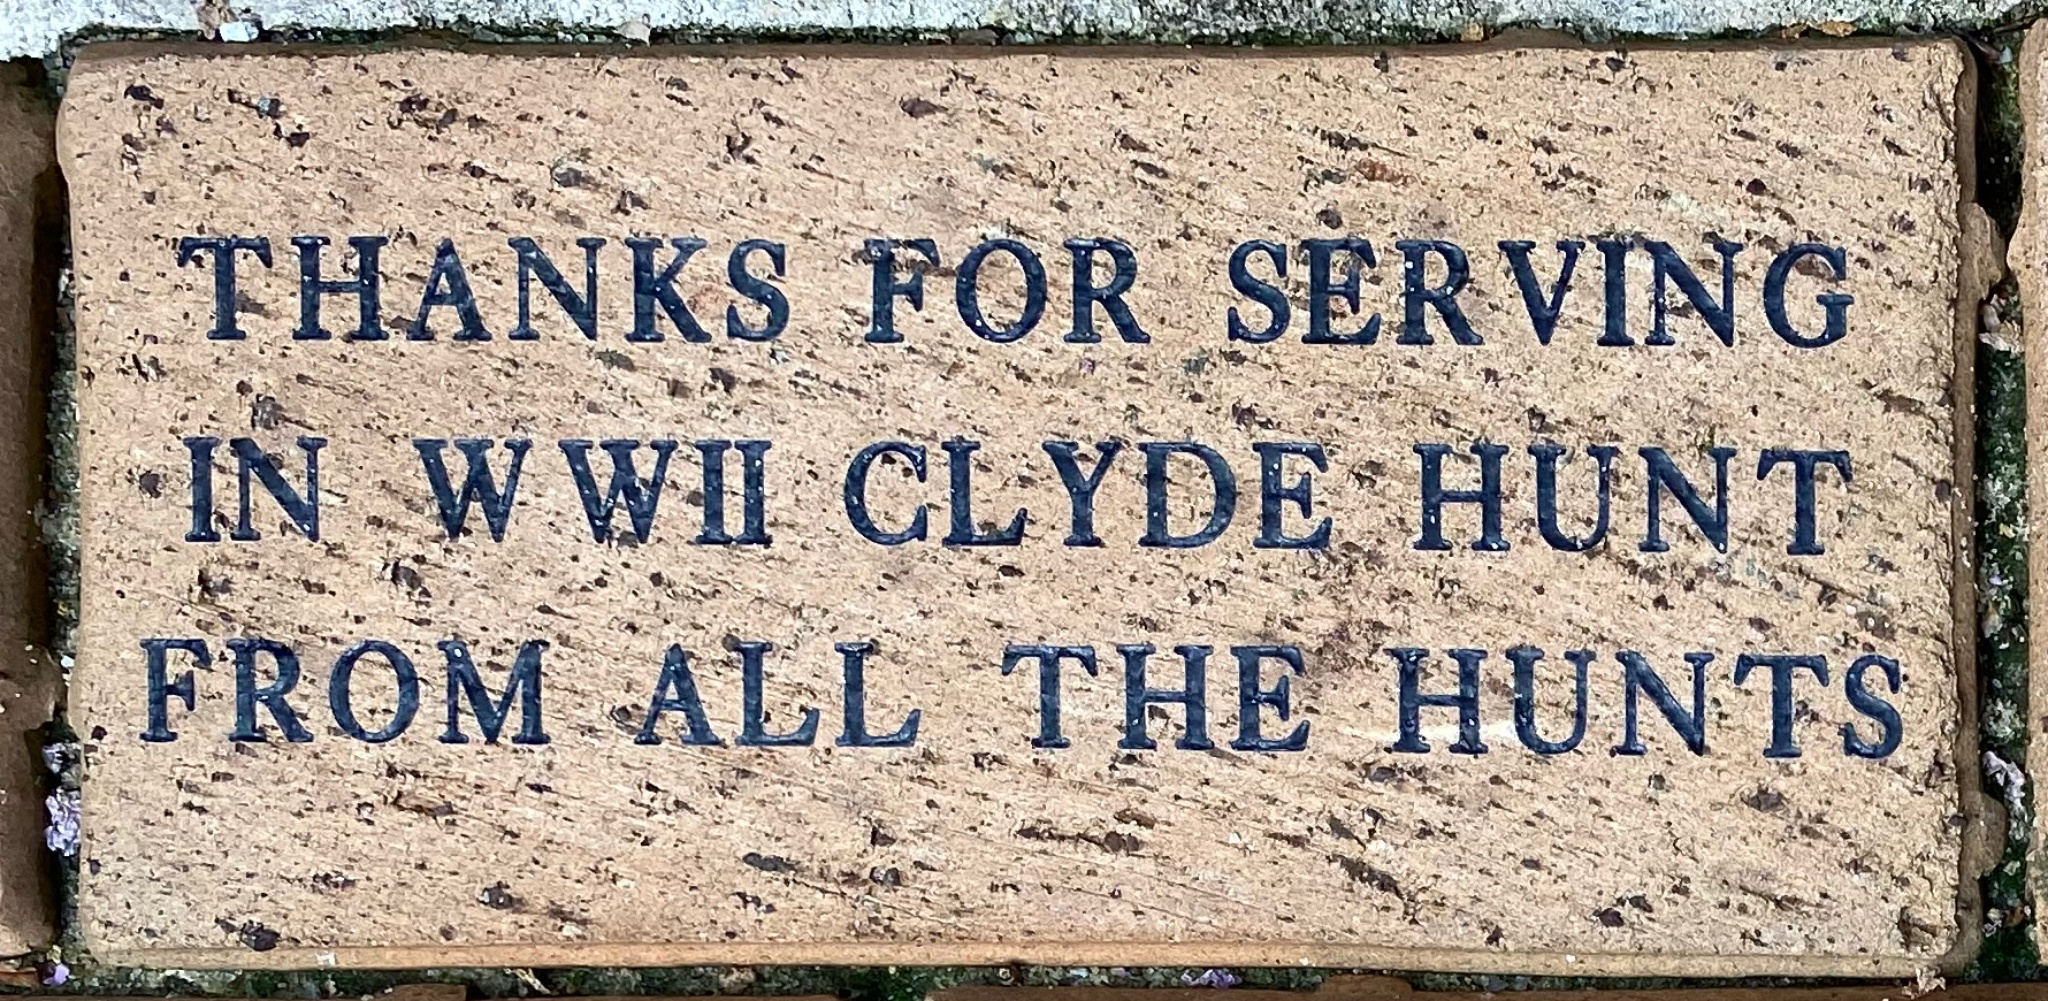 THANKS FOR SERVING IN WWII CLYDE HUNT FROM ALL THE HUNTS